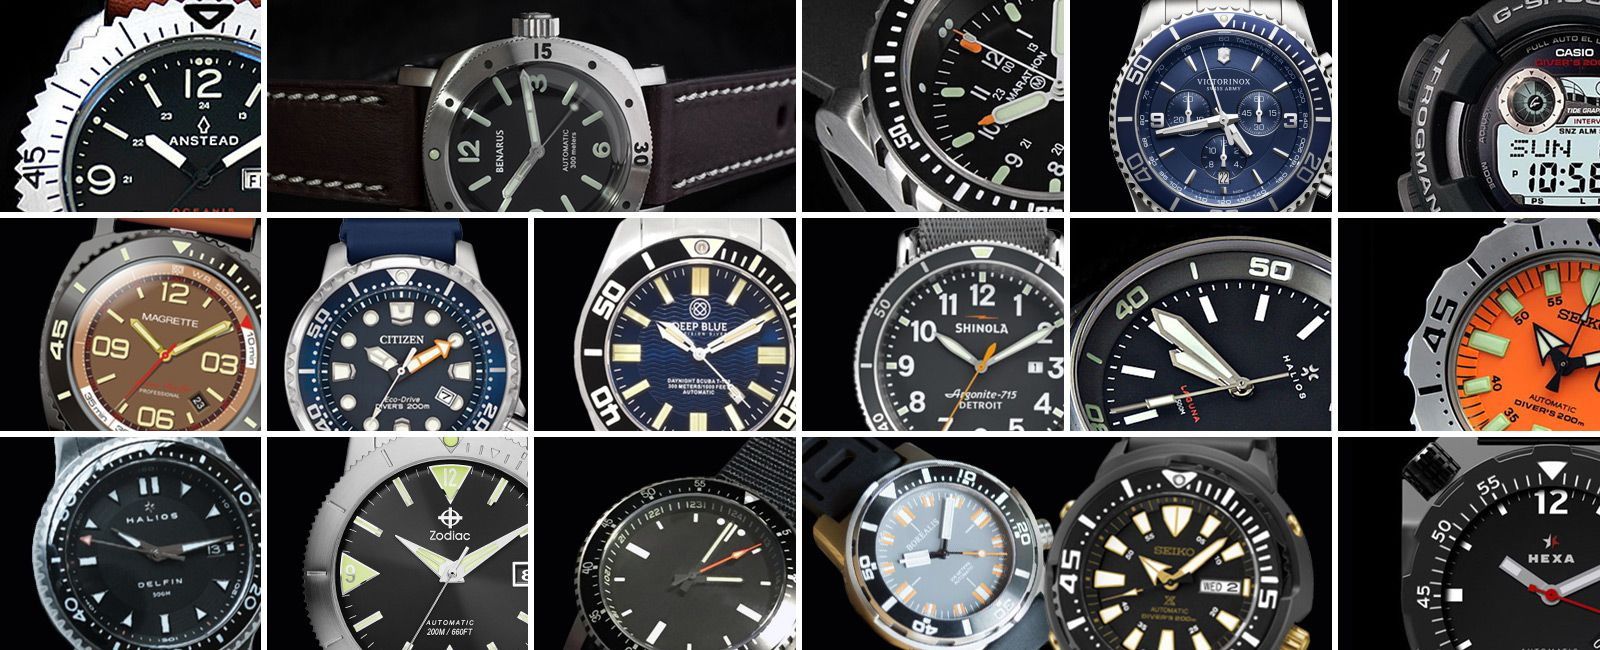 Best-Budget-Dive-Watches-Gear-Patrol-Lead-1600